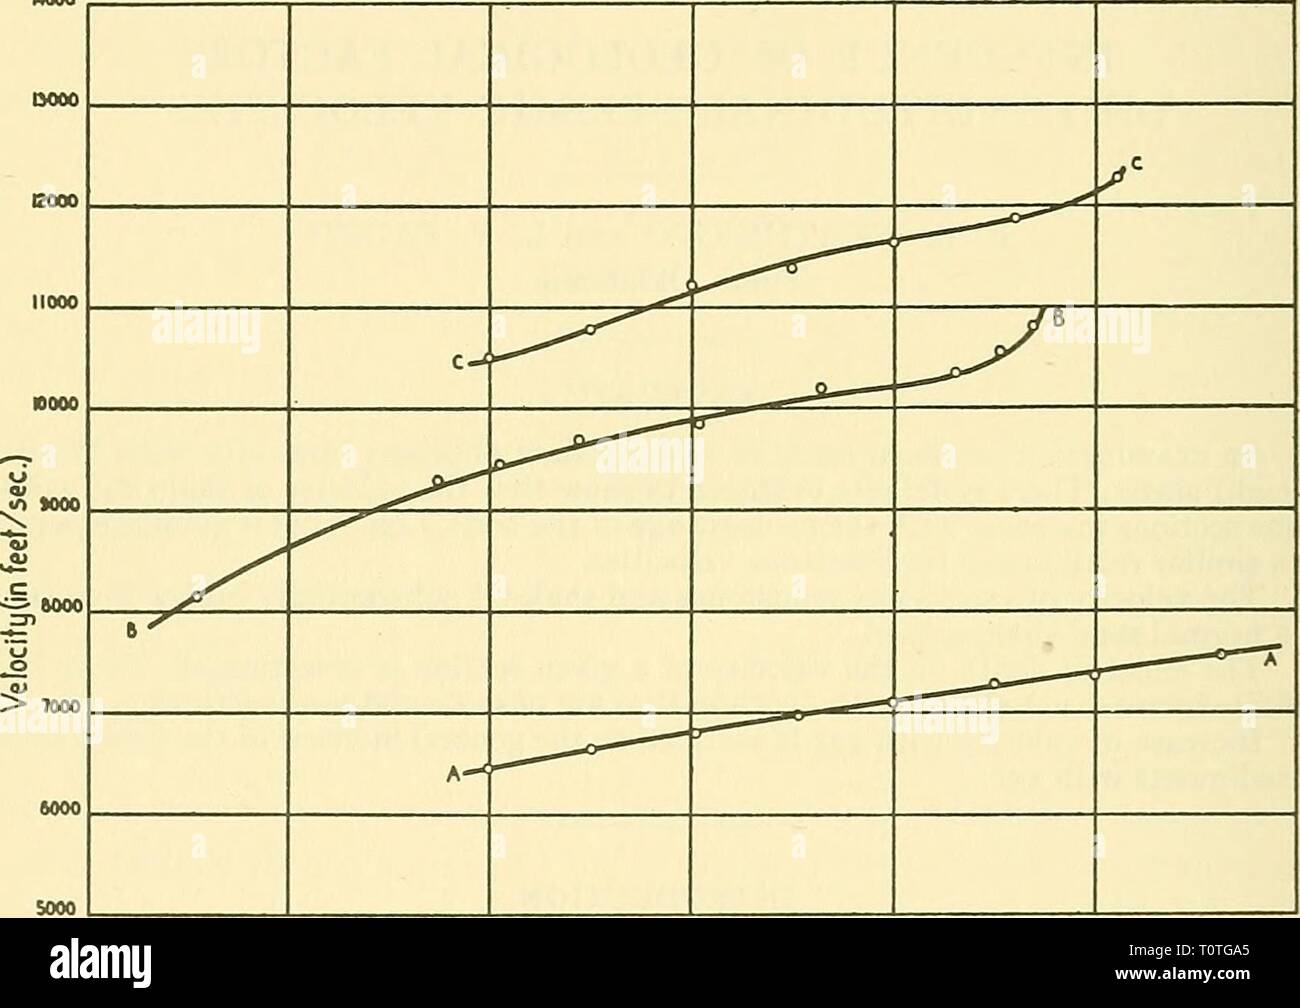 Early geophysical papers of the Early geophysical papers of the Society of Exploration Geophysicists  earlygeophysical00soci Year: 1947  2 B. B. WEATHERBY AND L. Y. FAUST PROCEDURE The type of data which were analyzed is shown in Figure i, where velocity-depth curves from three wells are plotted slsAA, BB, and CC. These curves have been determined in the usual manner by well shooting. The procedure is to place a charge of dynamite in a hole 20-70 feet deep located about 1,000 feet from a well. A geophone is lowered into the well to some measured depth and this geophone records the time of the  - Stock Image